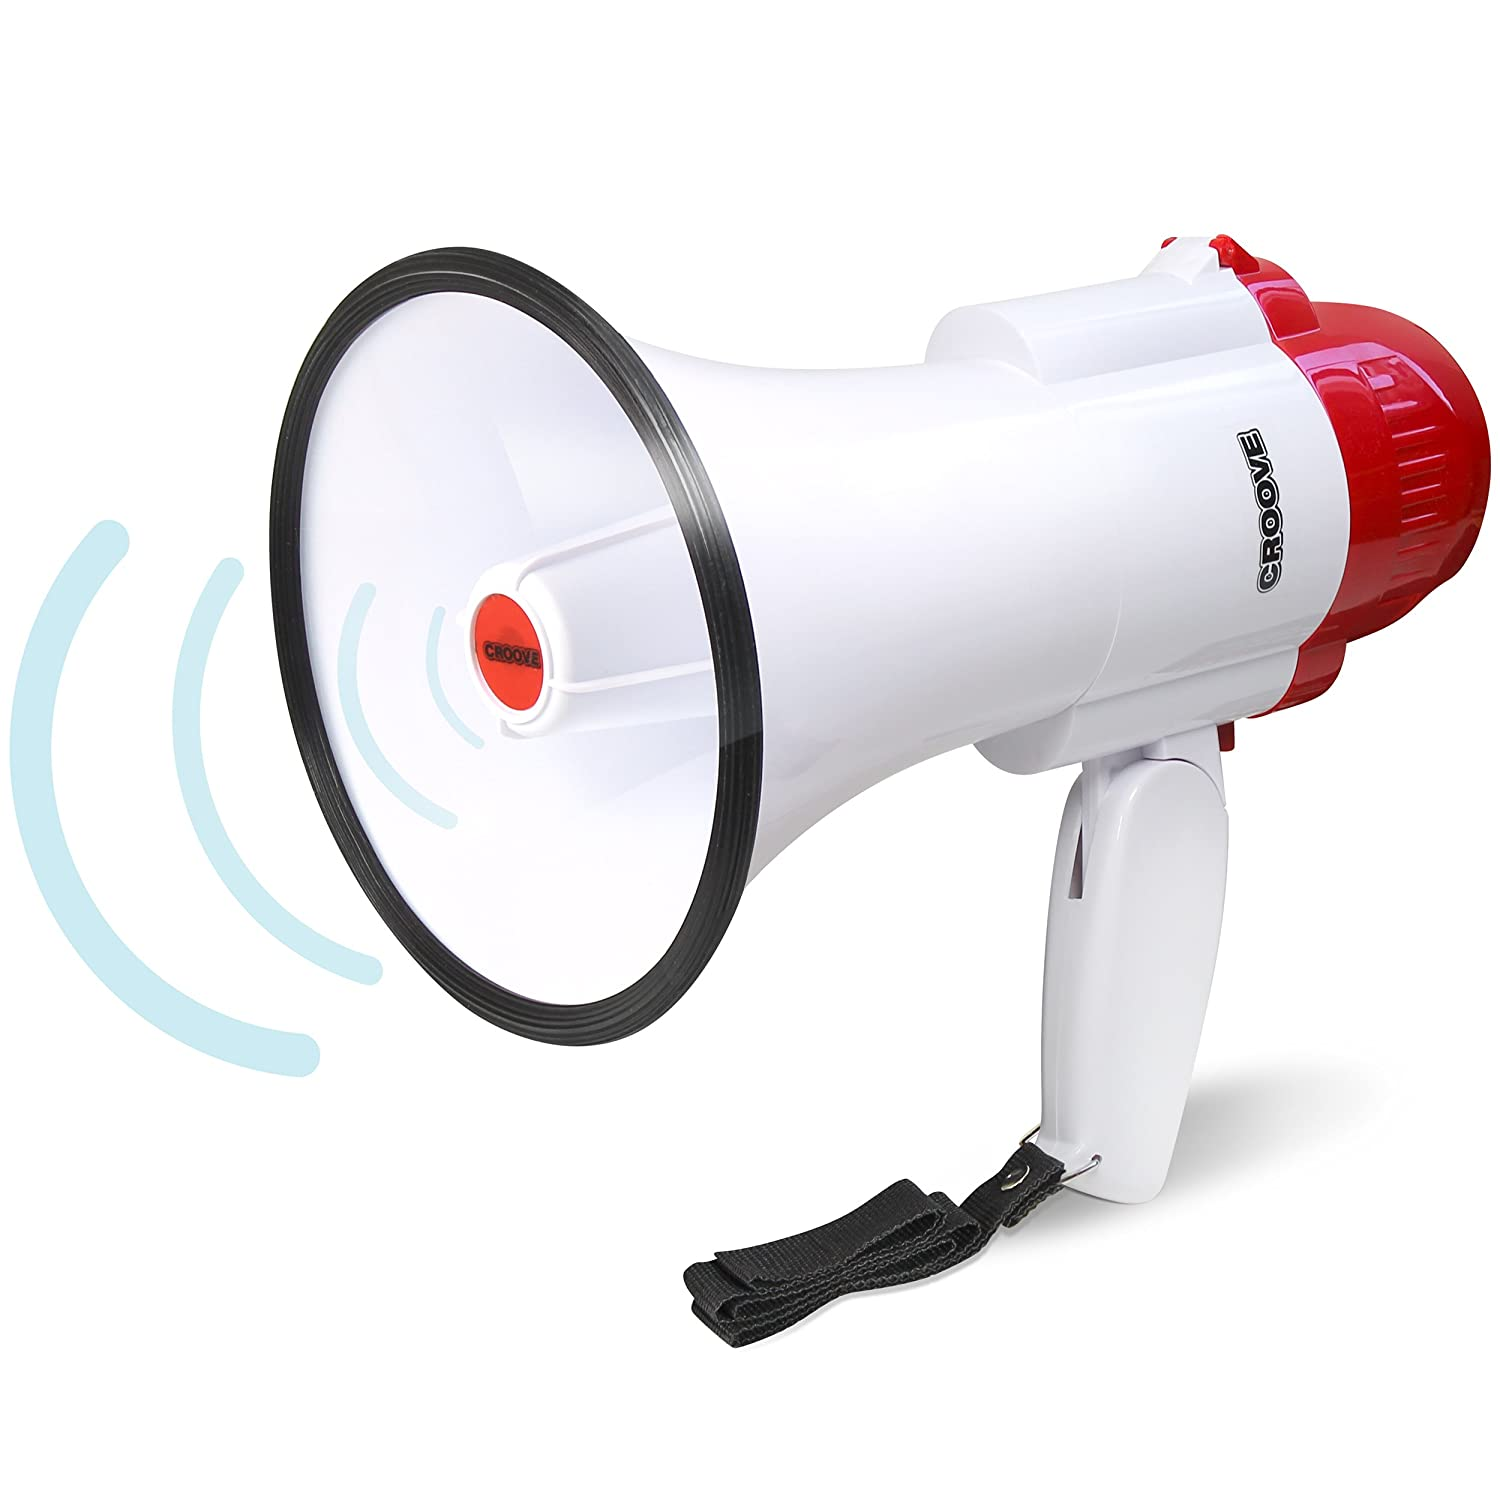 Megaphone Bullhorn With Siren, 30 Watt Powerful and Lightweight Croove 733